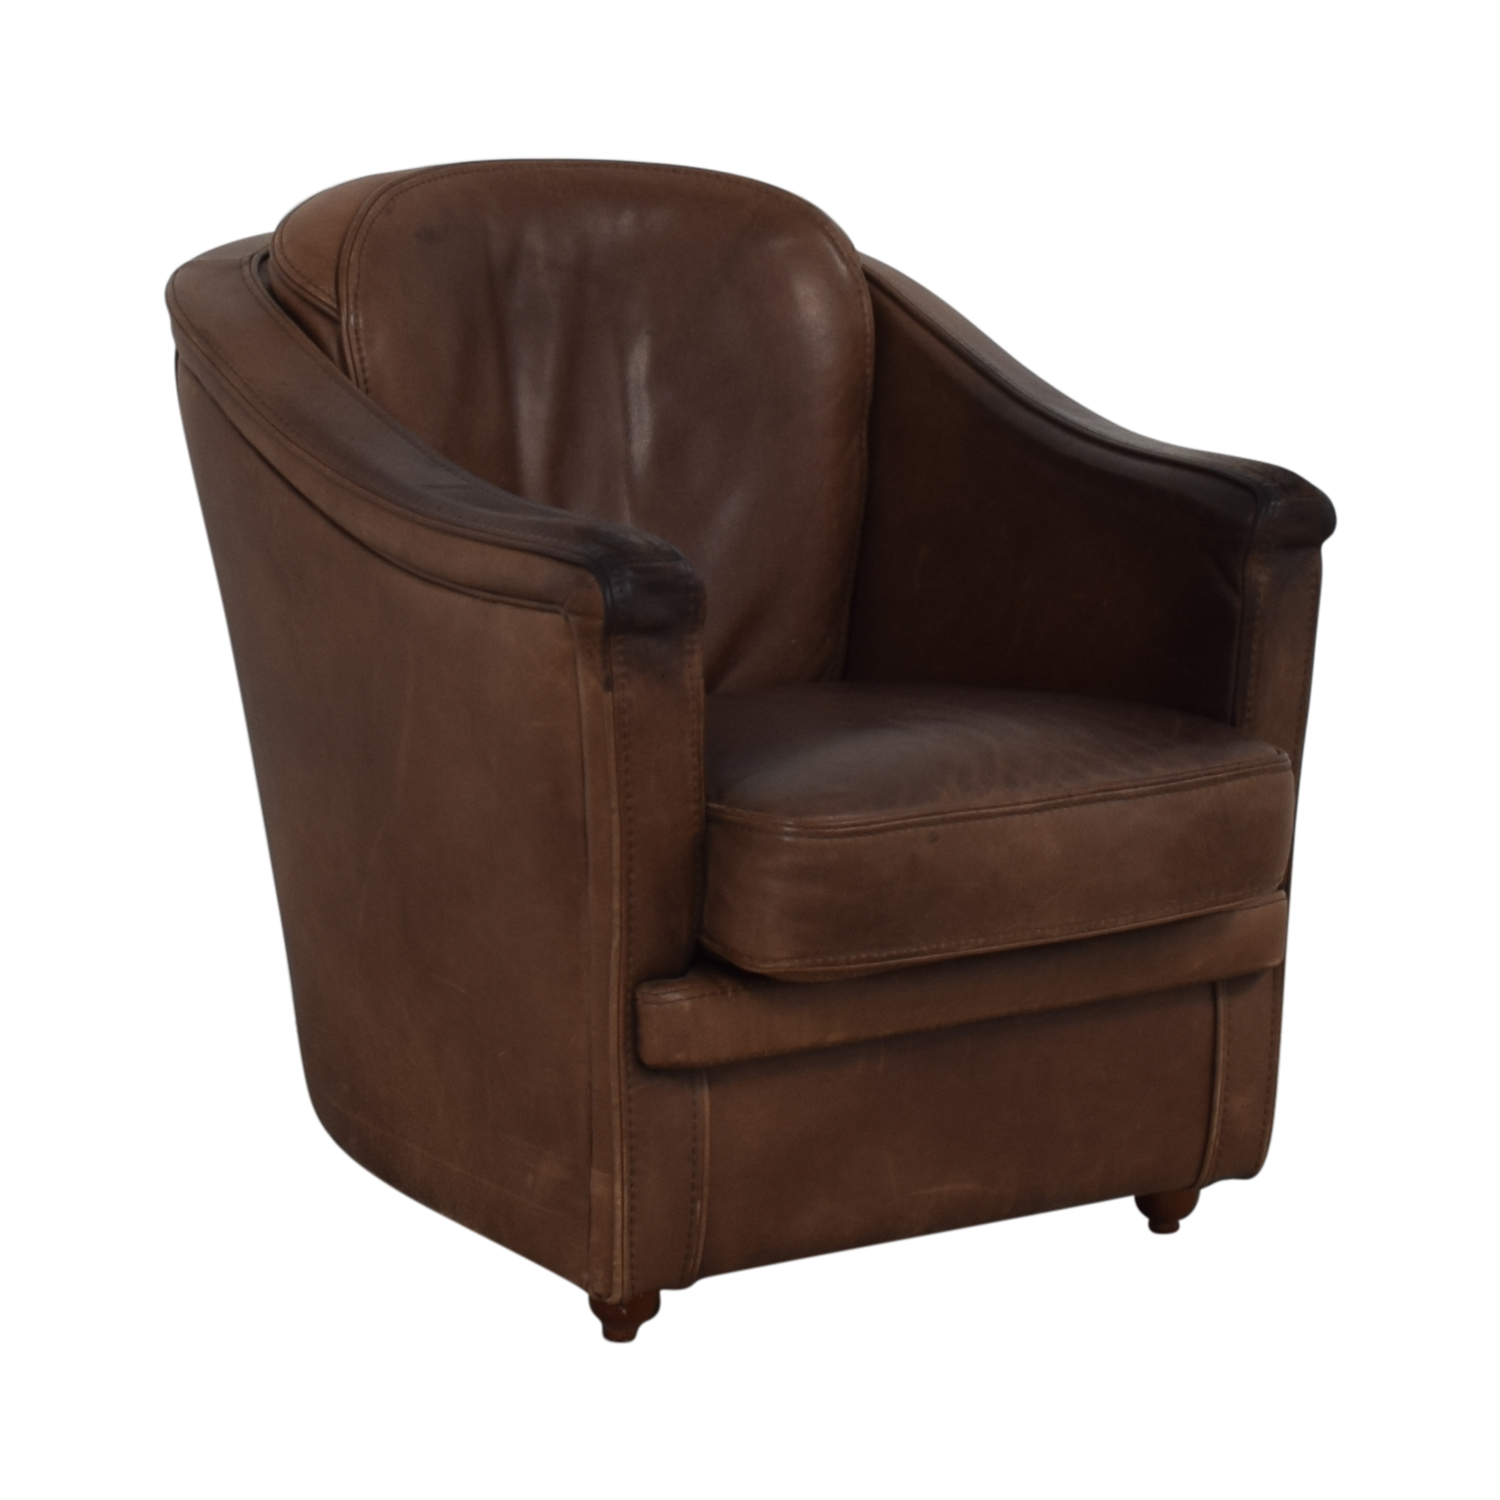 Maurice Villency Maurice Villency Leather Armchair price